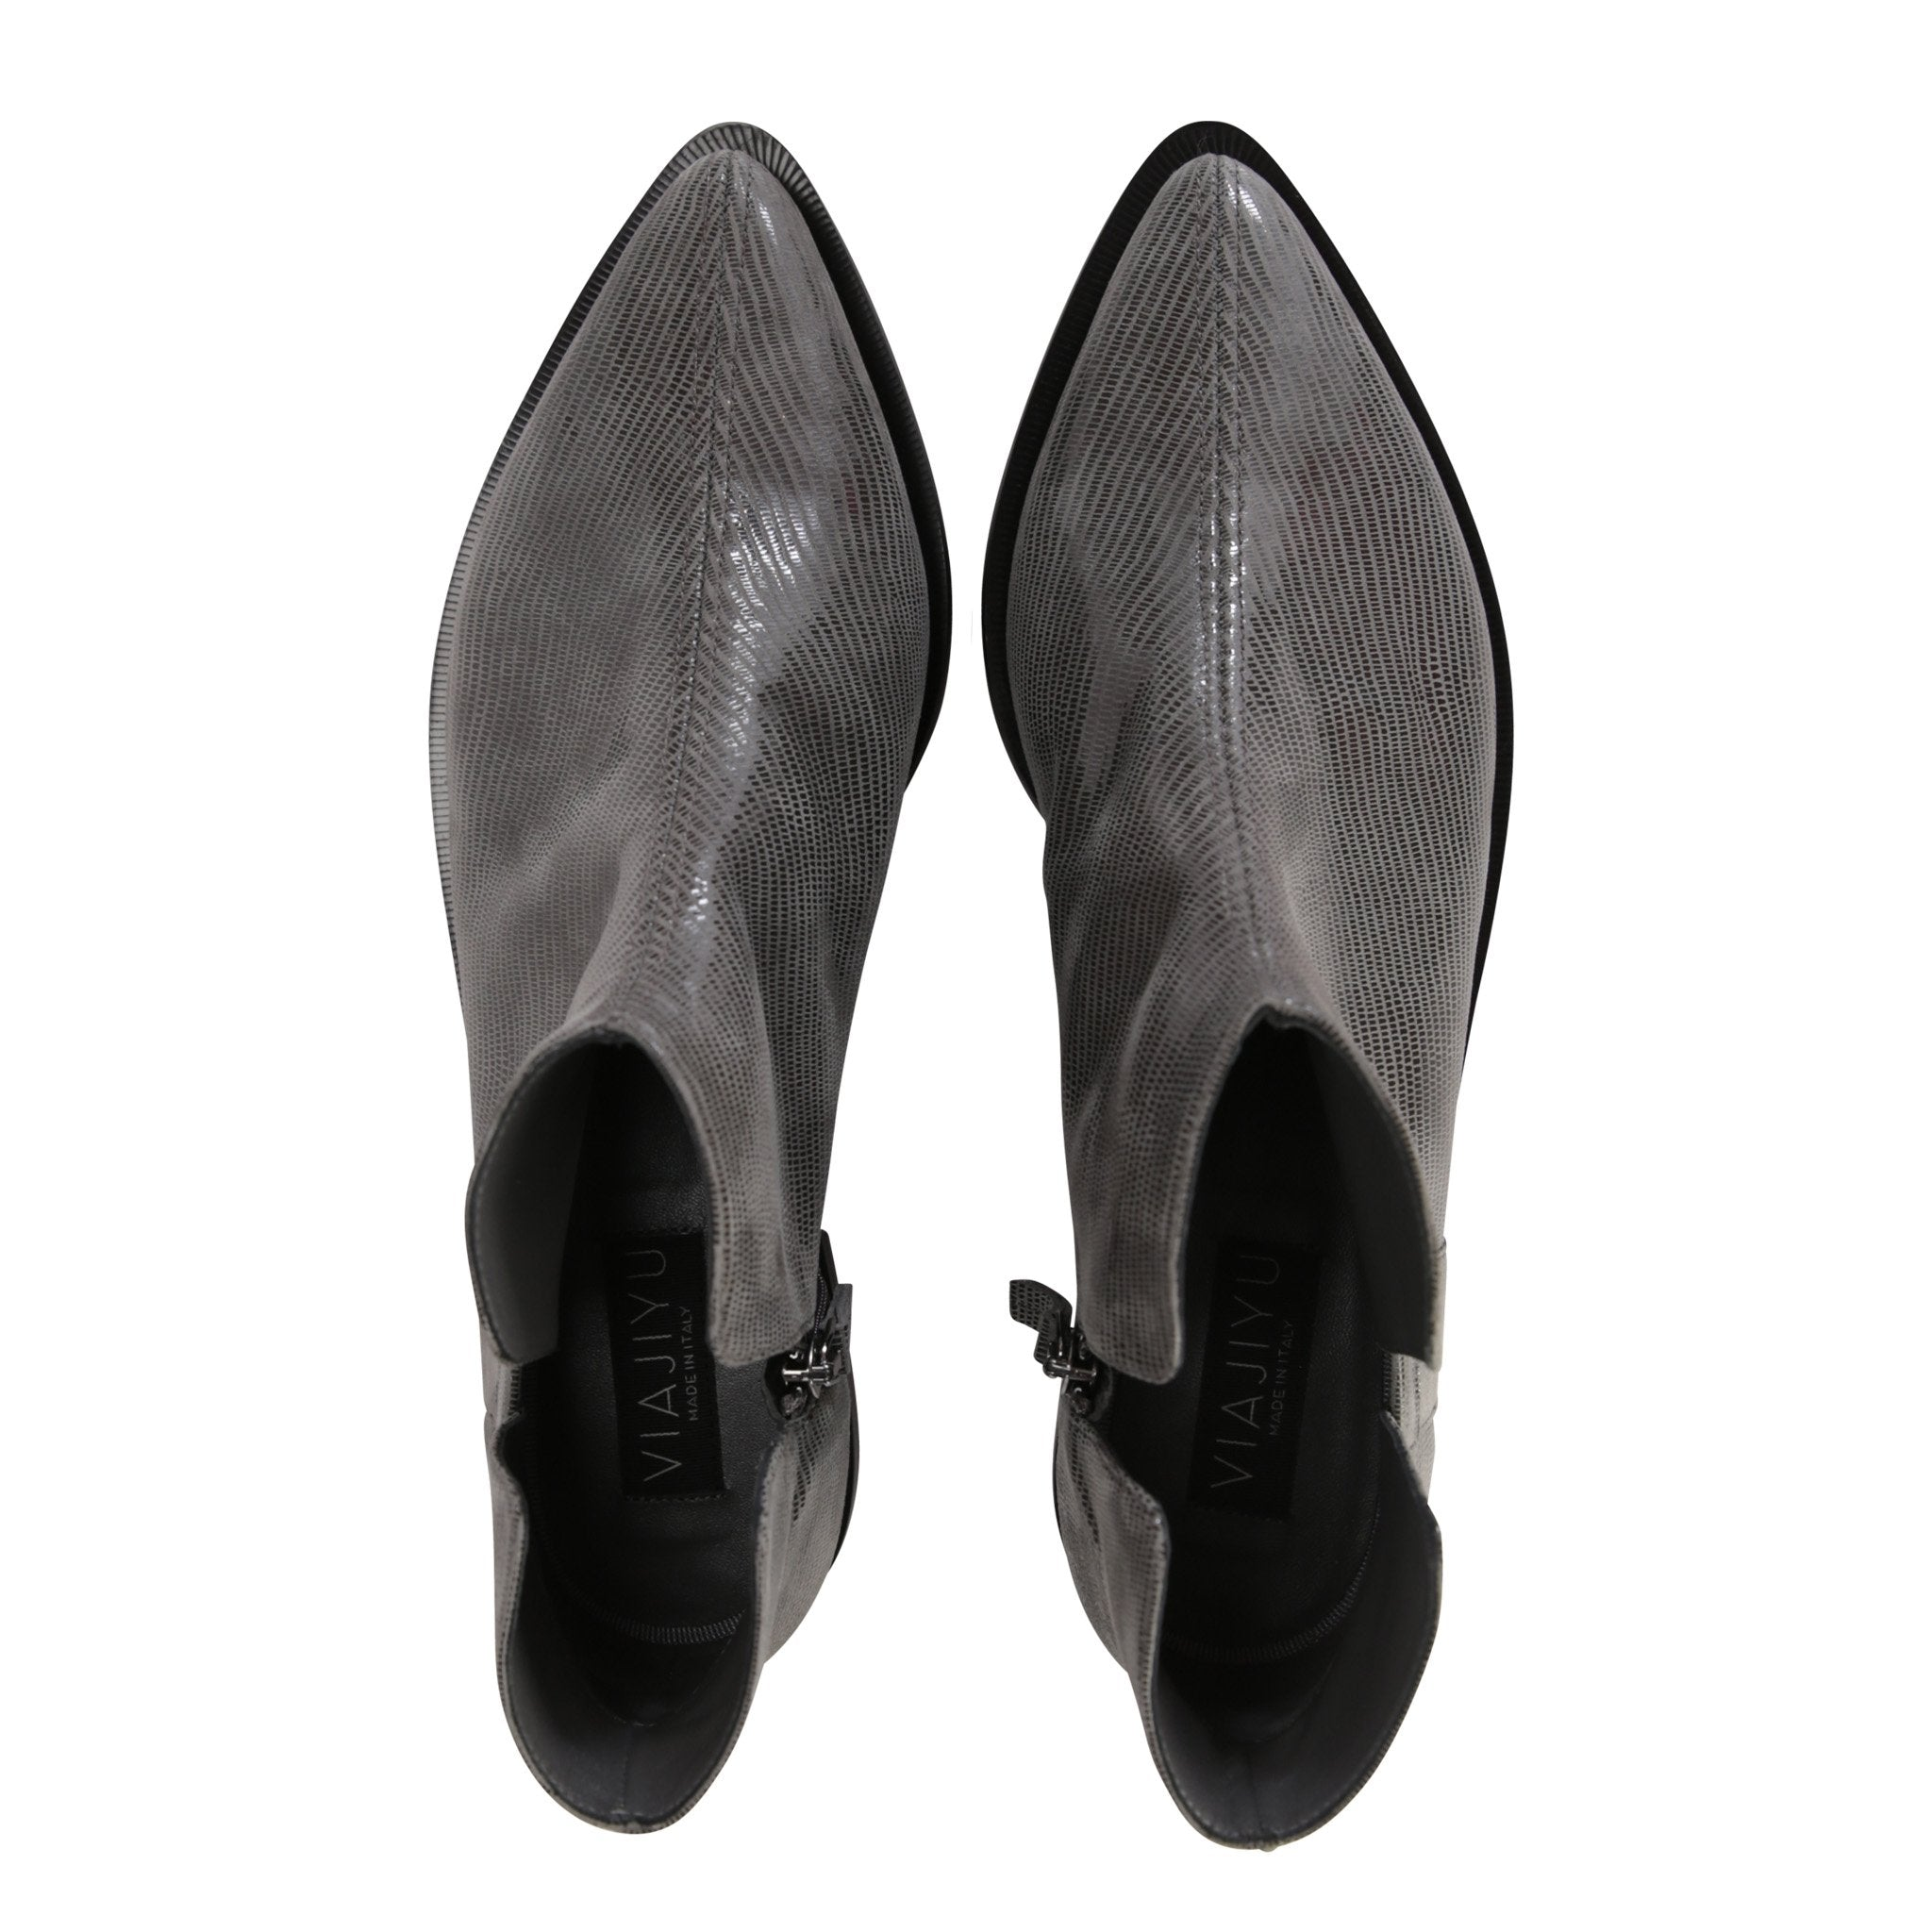 RAVELLO - Varanus Anthracite + Velukid, VIAJIYU - Women's Hand Made Sustainable Luxury Shoes. Made in Italy. Made to Order.